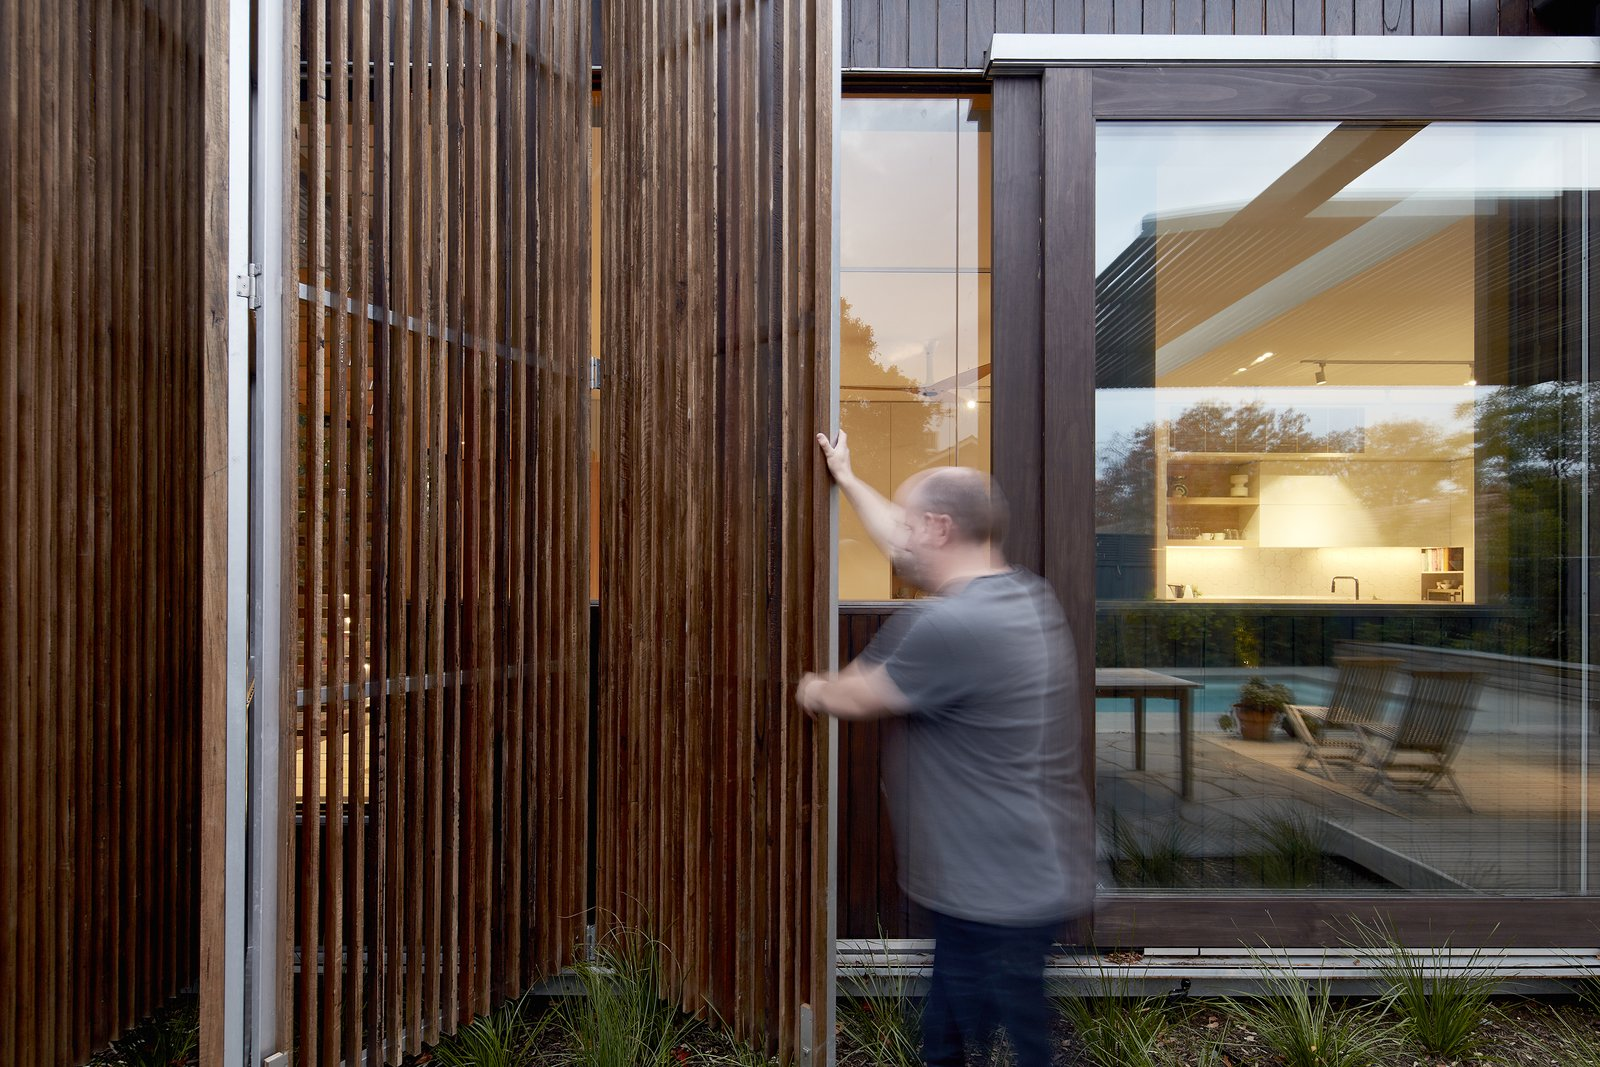 Windows, Wood, Sliding Window Type, and Picture Window Type The screens help control sunlight penetration and passive solar radiation.  Photo 15 of 17 in Wooden Screens Shade This Sustainable Melbourne Residence